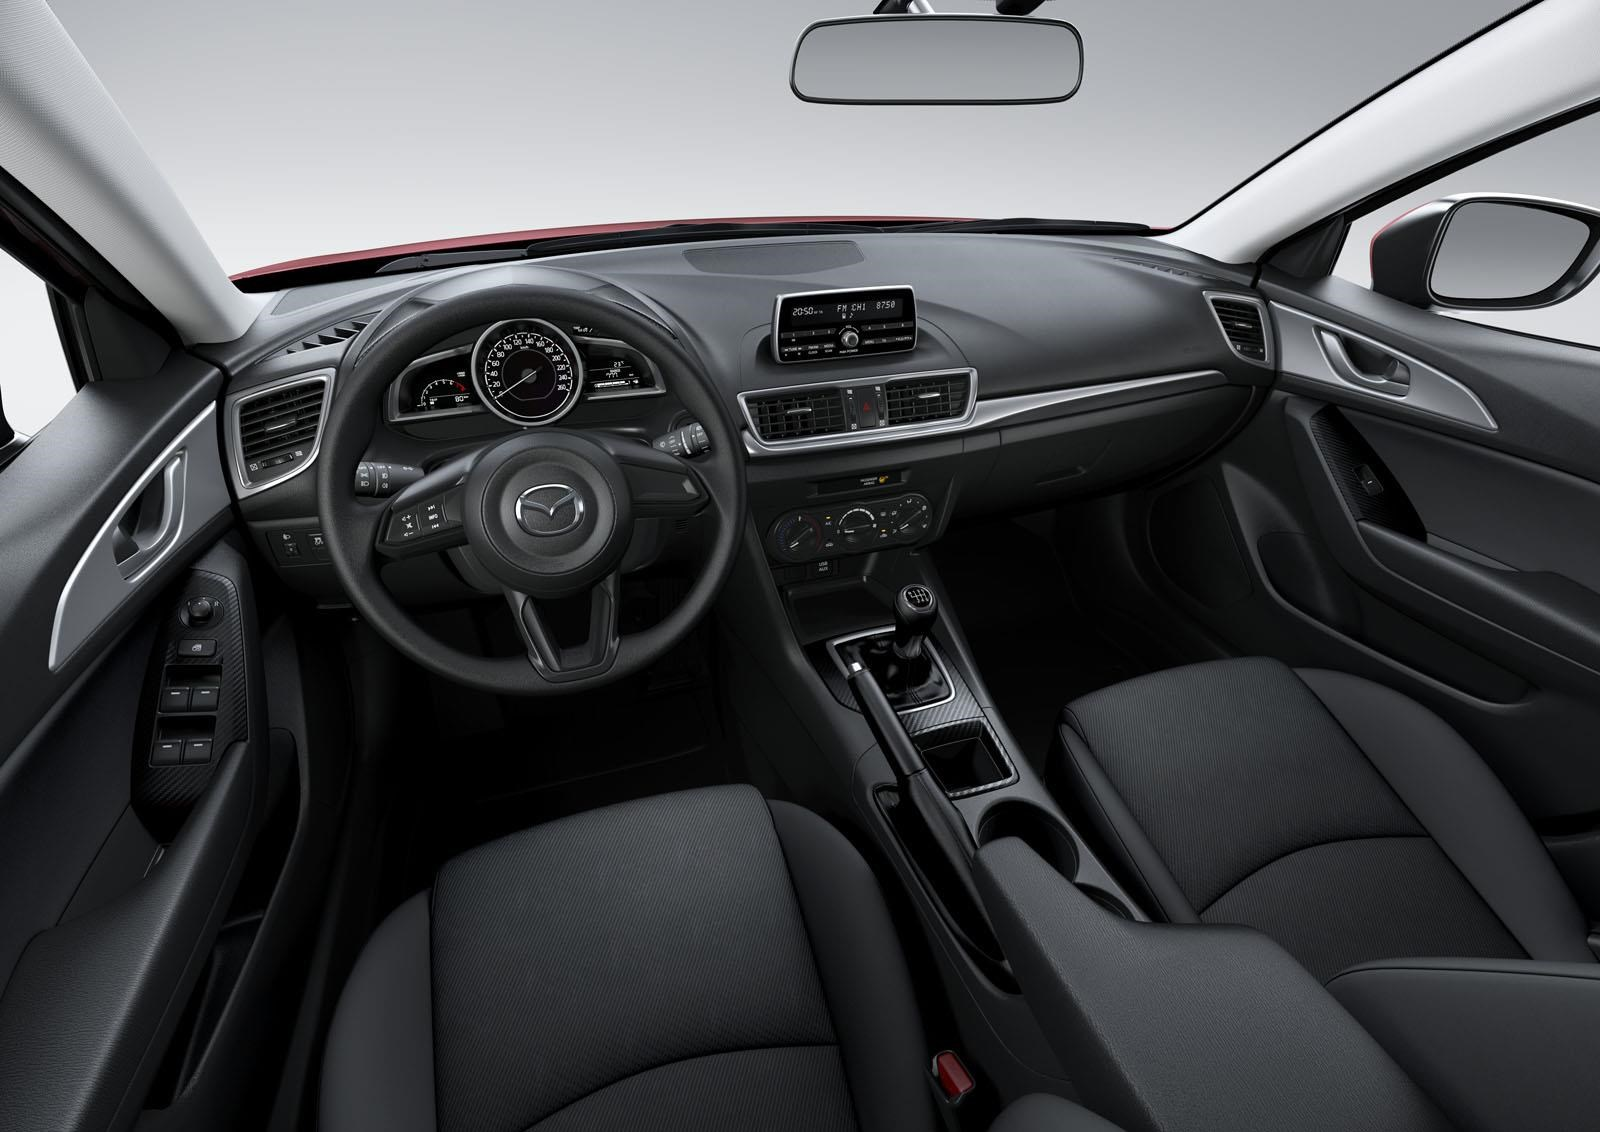 mazda 3 2017 llega a m xico desde 265 900 pesos. Black Bedroom Furniture Sets. Home Design Ideas